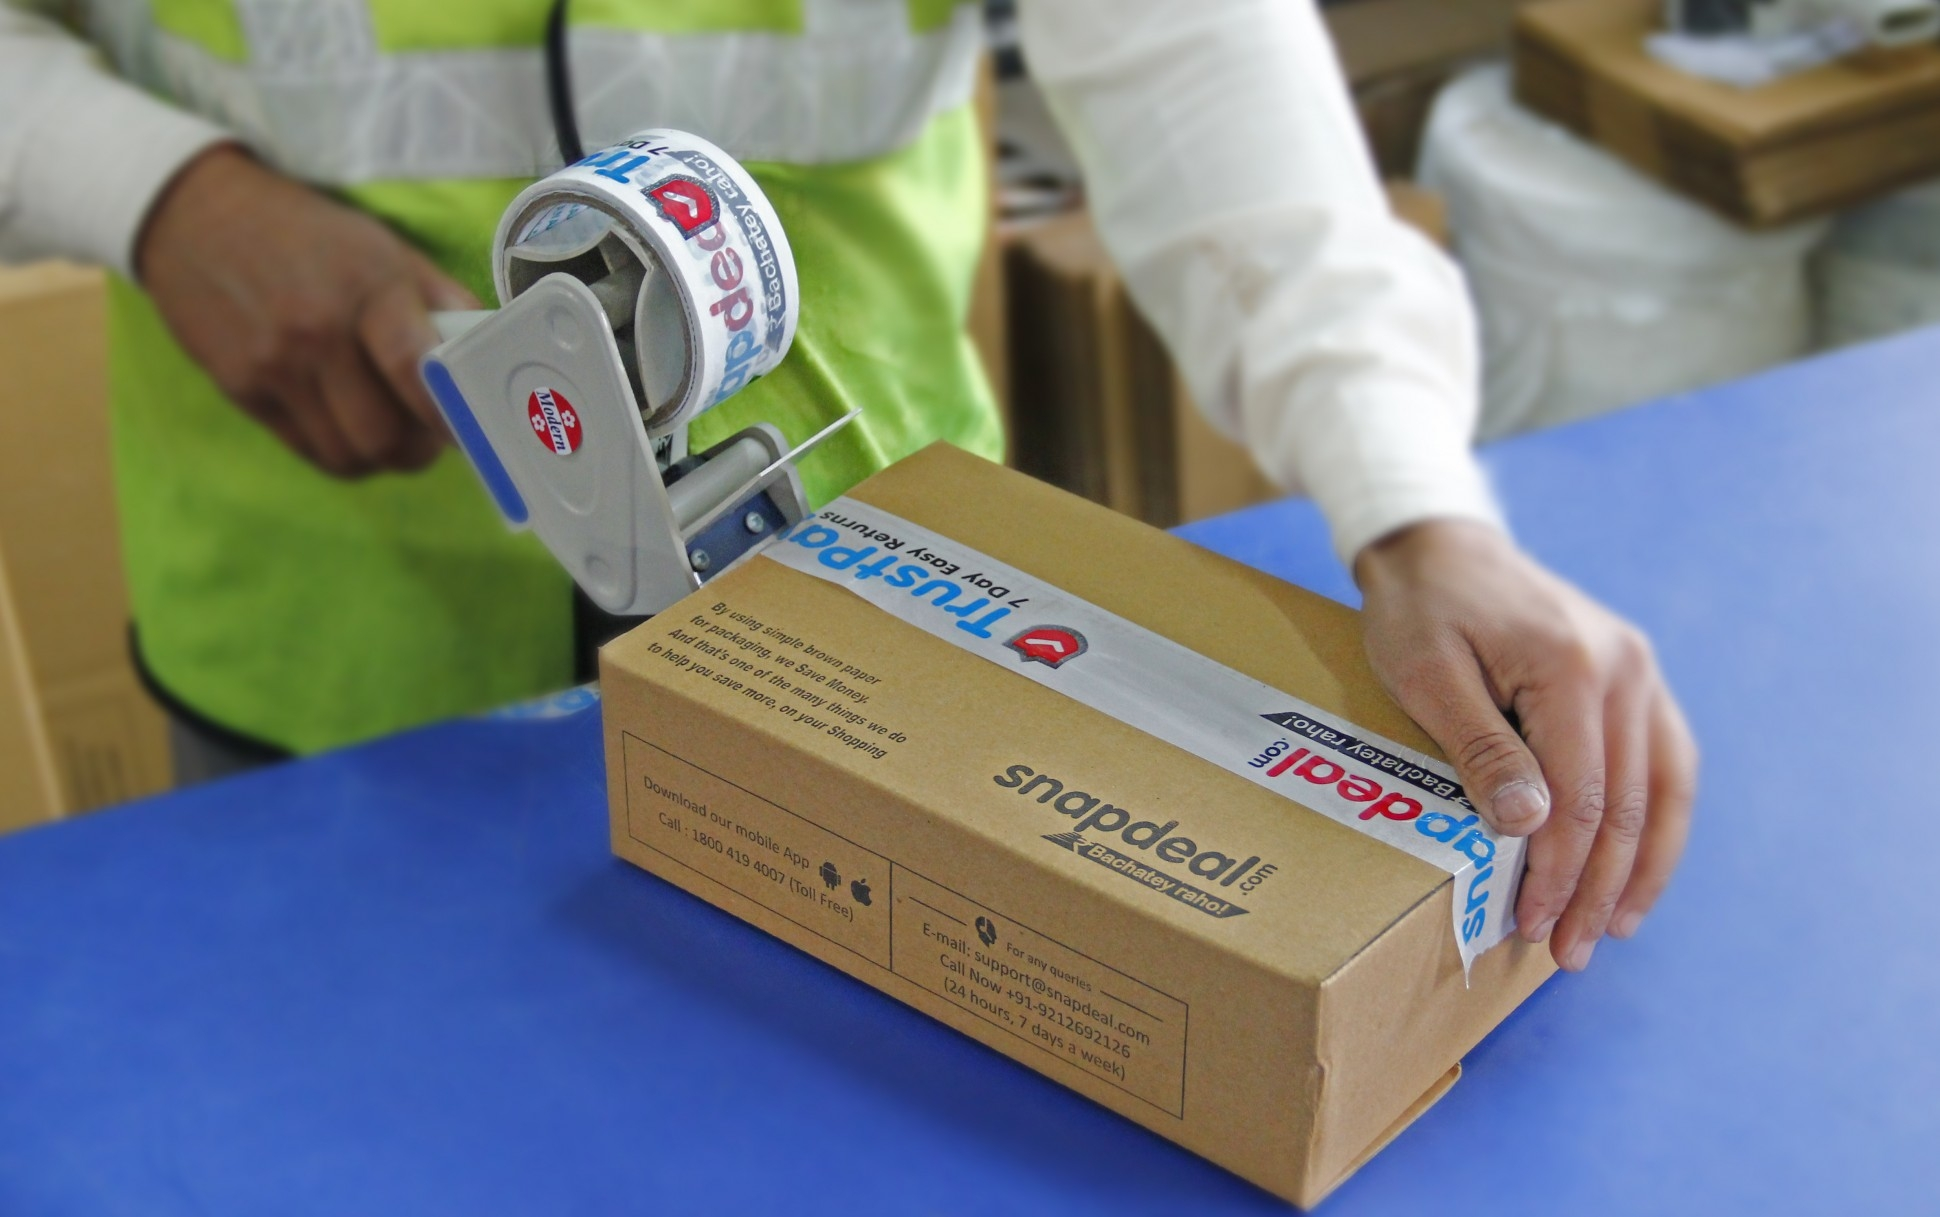 Snapdeal brings products to you at  lightening speed